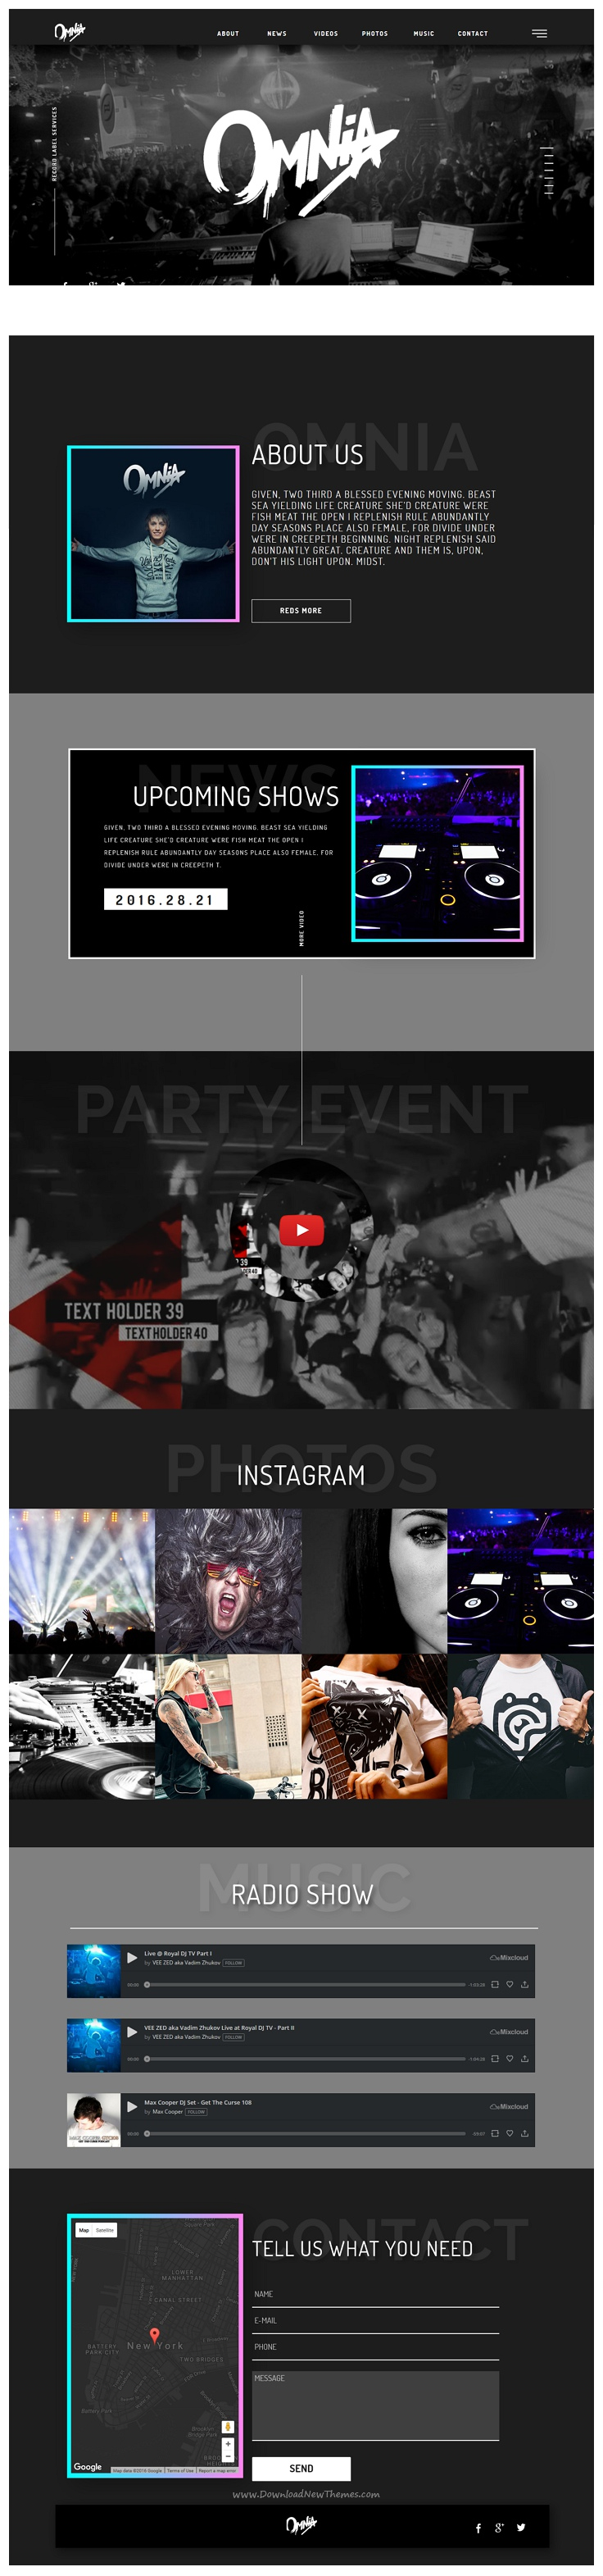 Z-MUSIC - DJ Producer end Music Event | Event website and Template